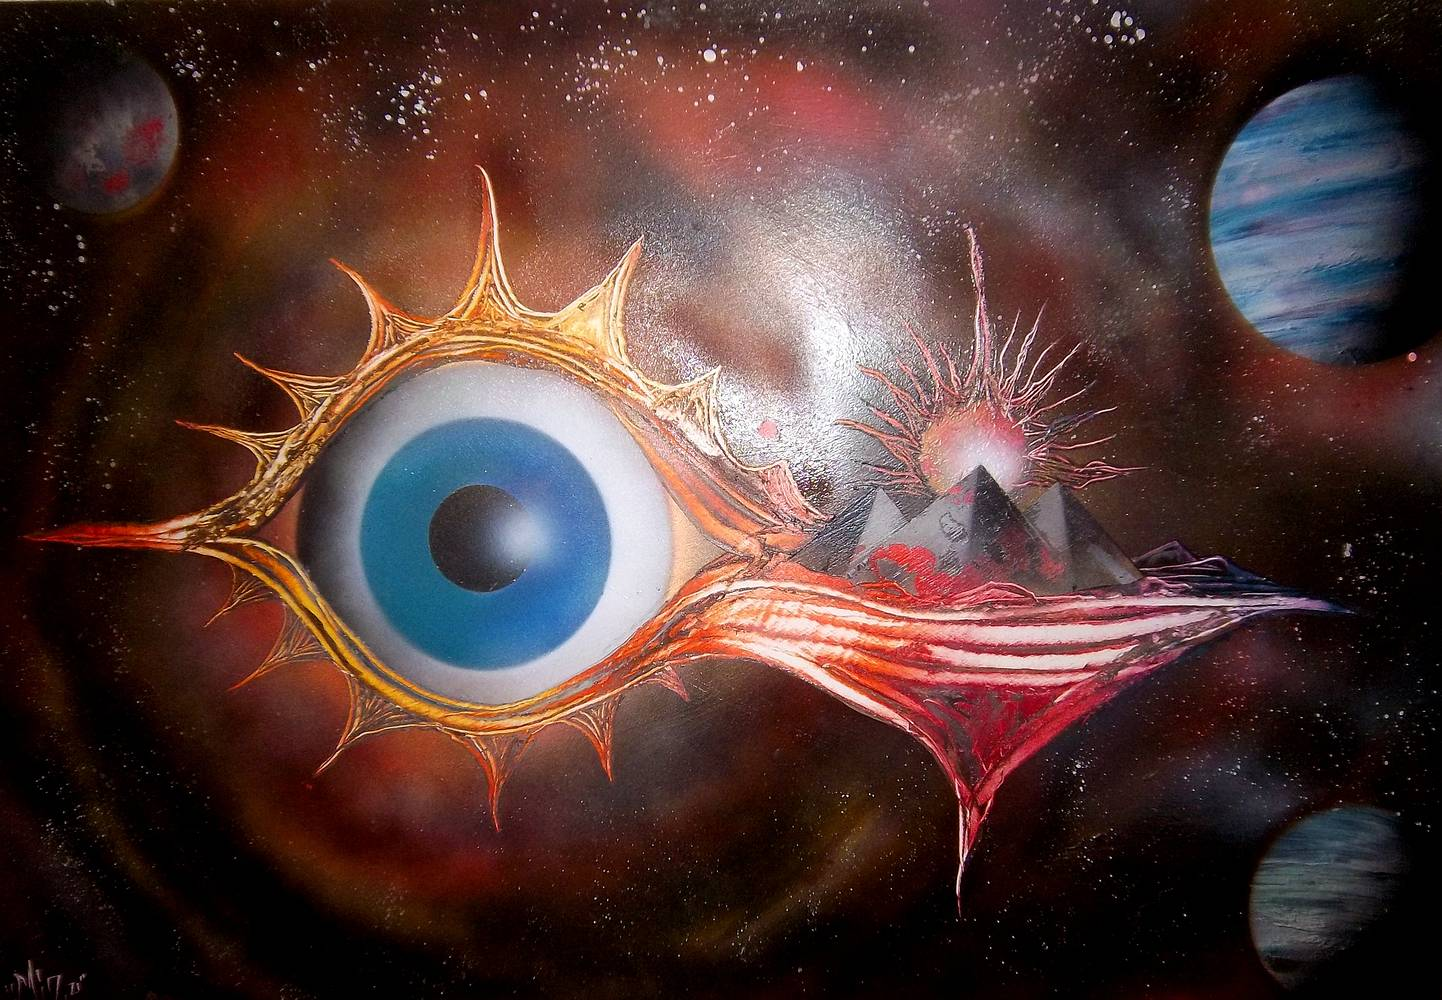 Eye of Horus by Isaac Carpenter